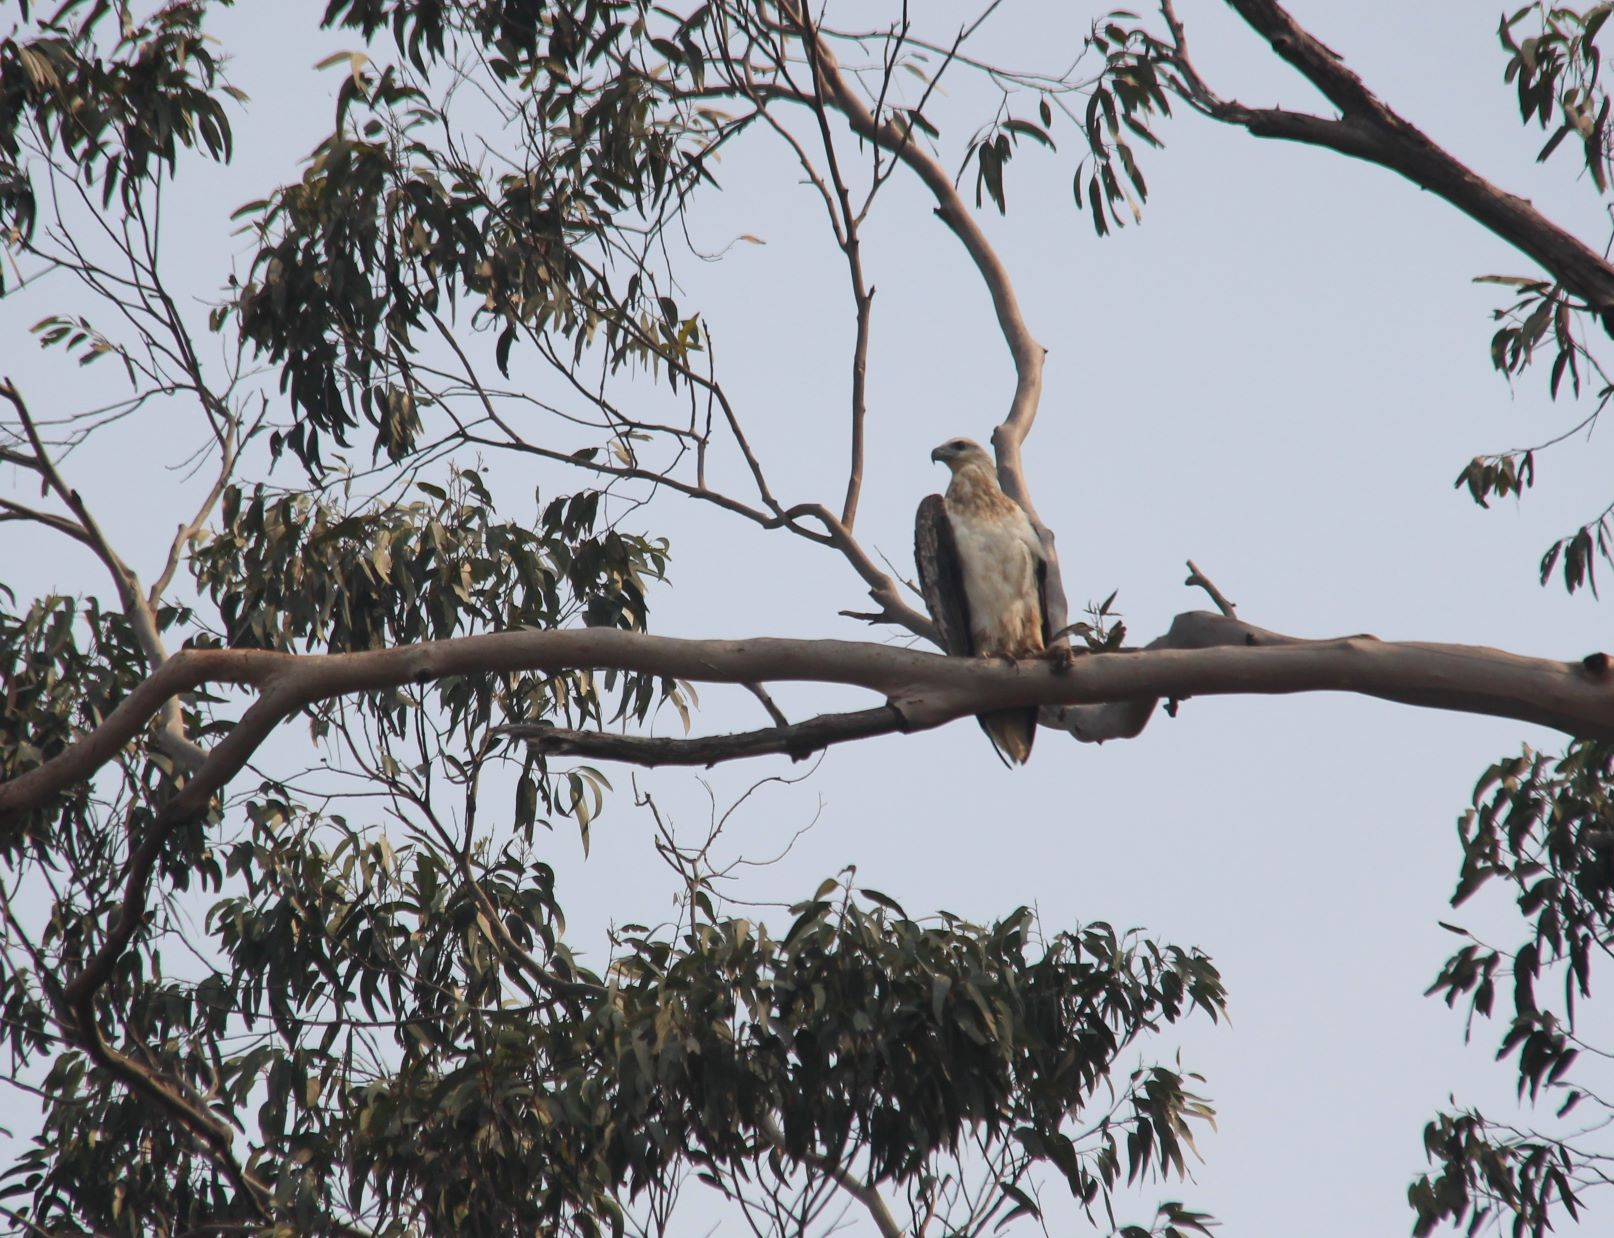 Young White bellied sea eagle